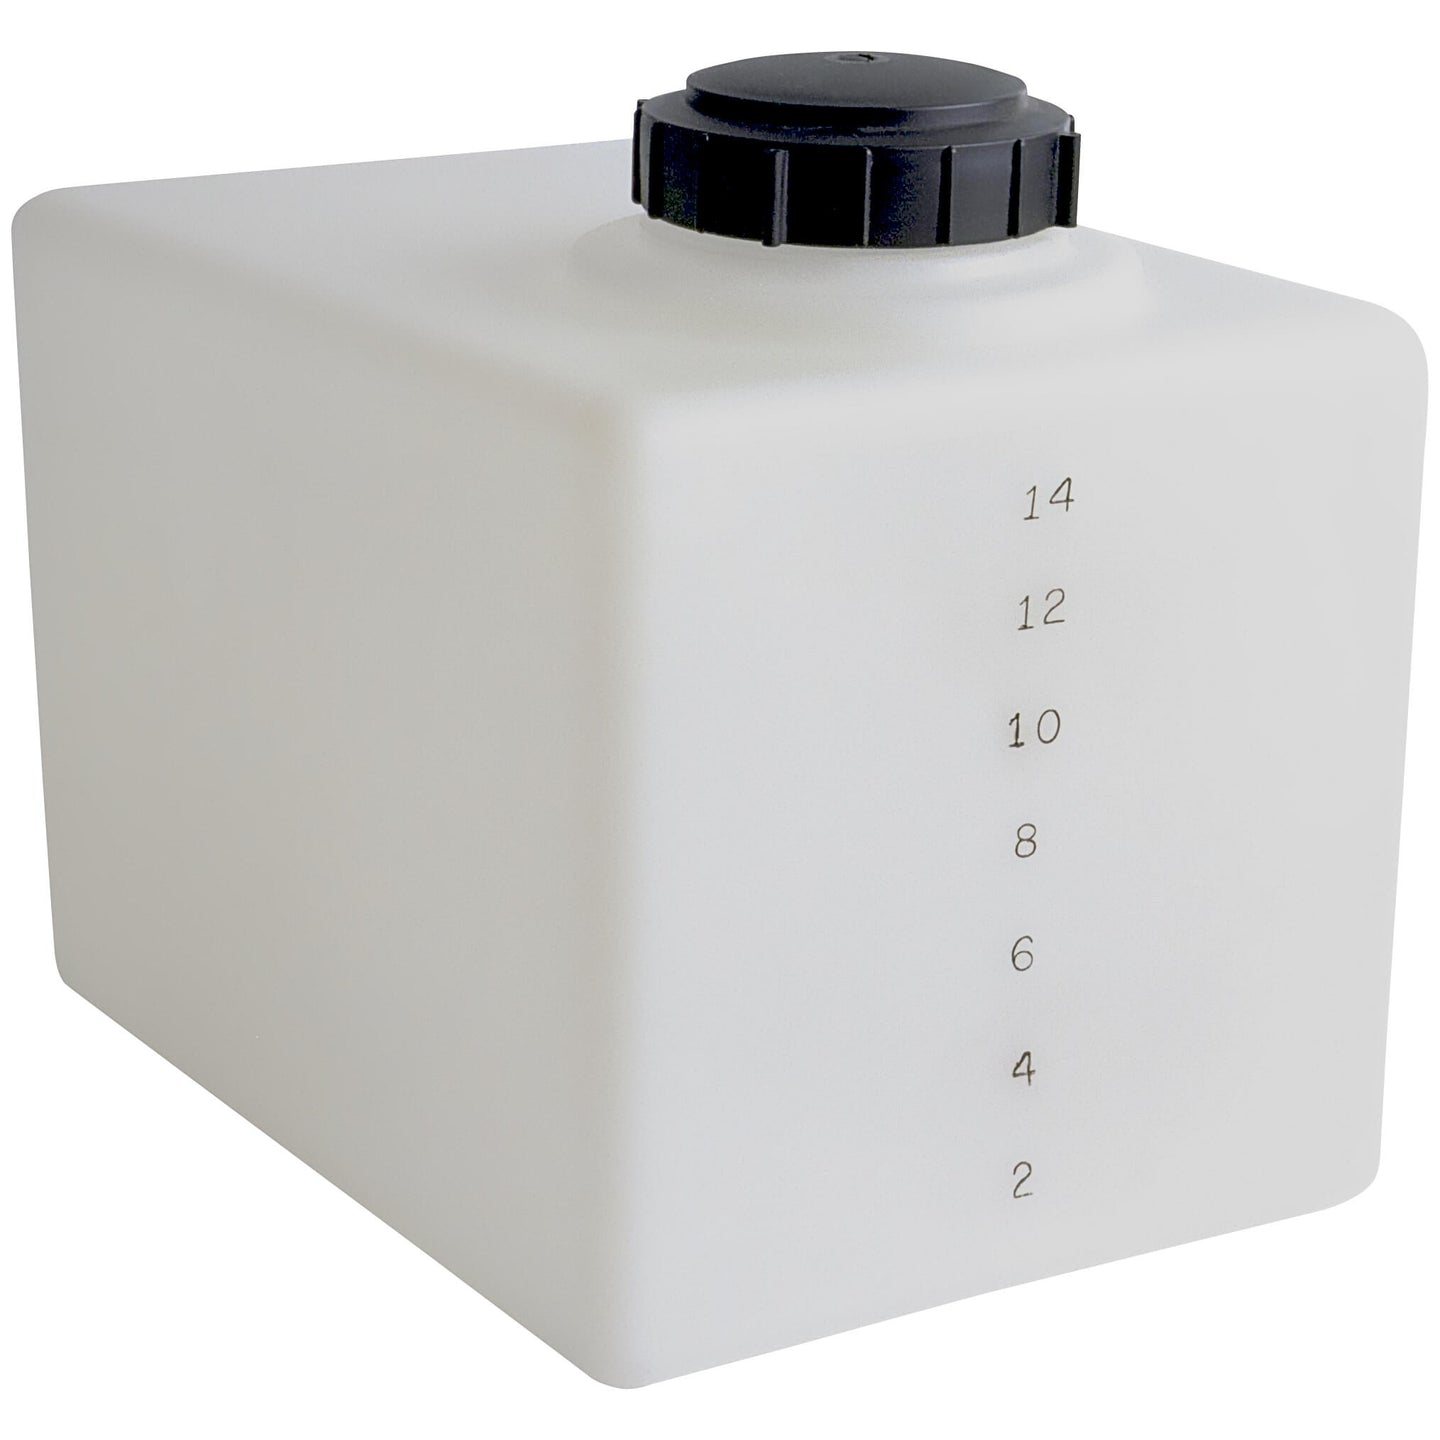 16 Gallon Flat Bottom Cube Water Storage and Salt Mixing Tank with Gallon Indicators and Threaded Lid (Shipping Included)